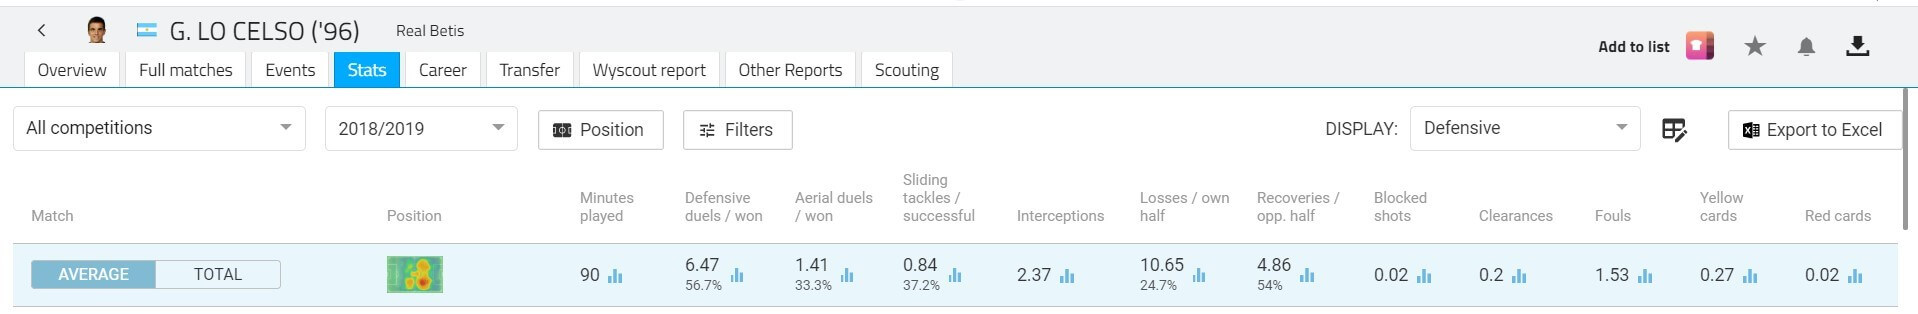 Giovanni Lo Celso 2018/19 scout report tactical analysis tactics 1